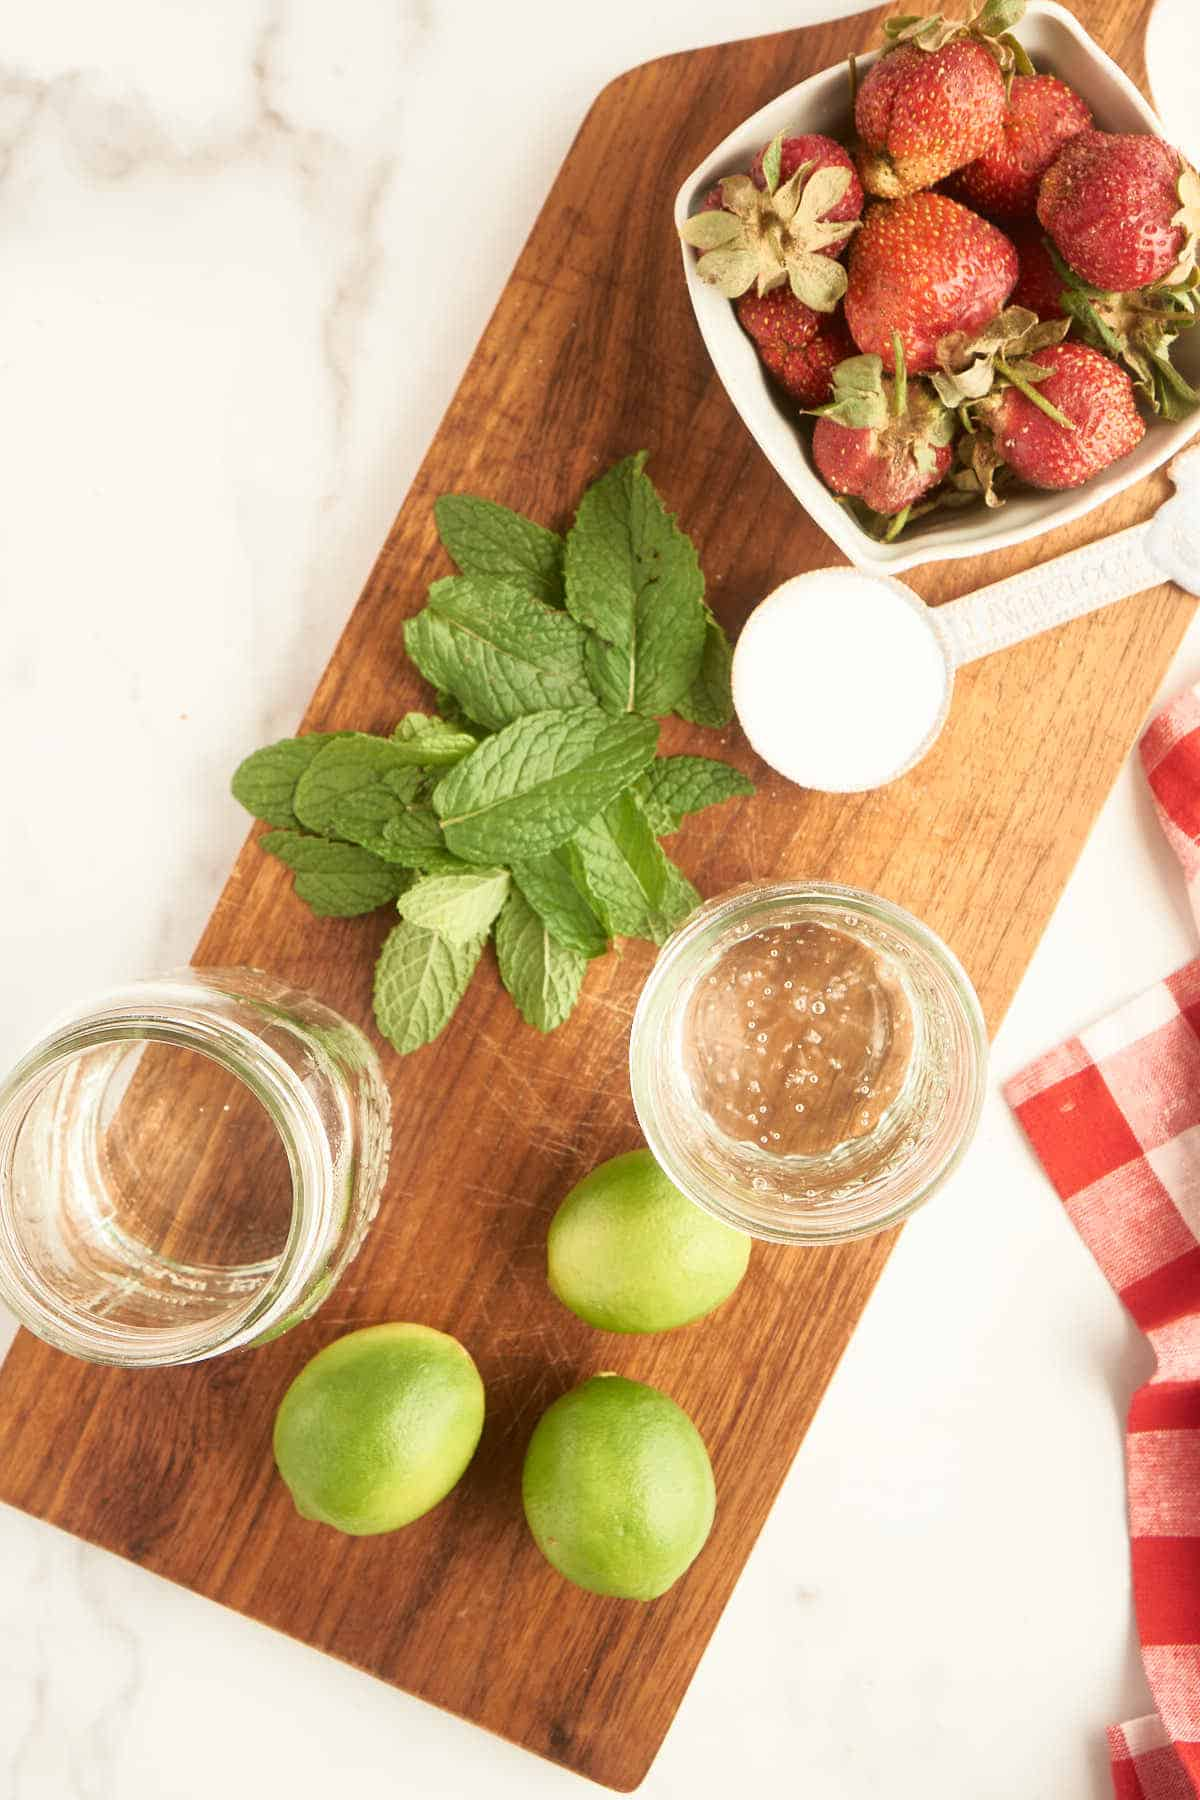 wooden board with fresh mint, strawberries, limes, club soda, and white rum